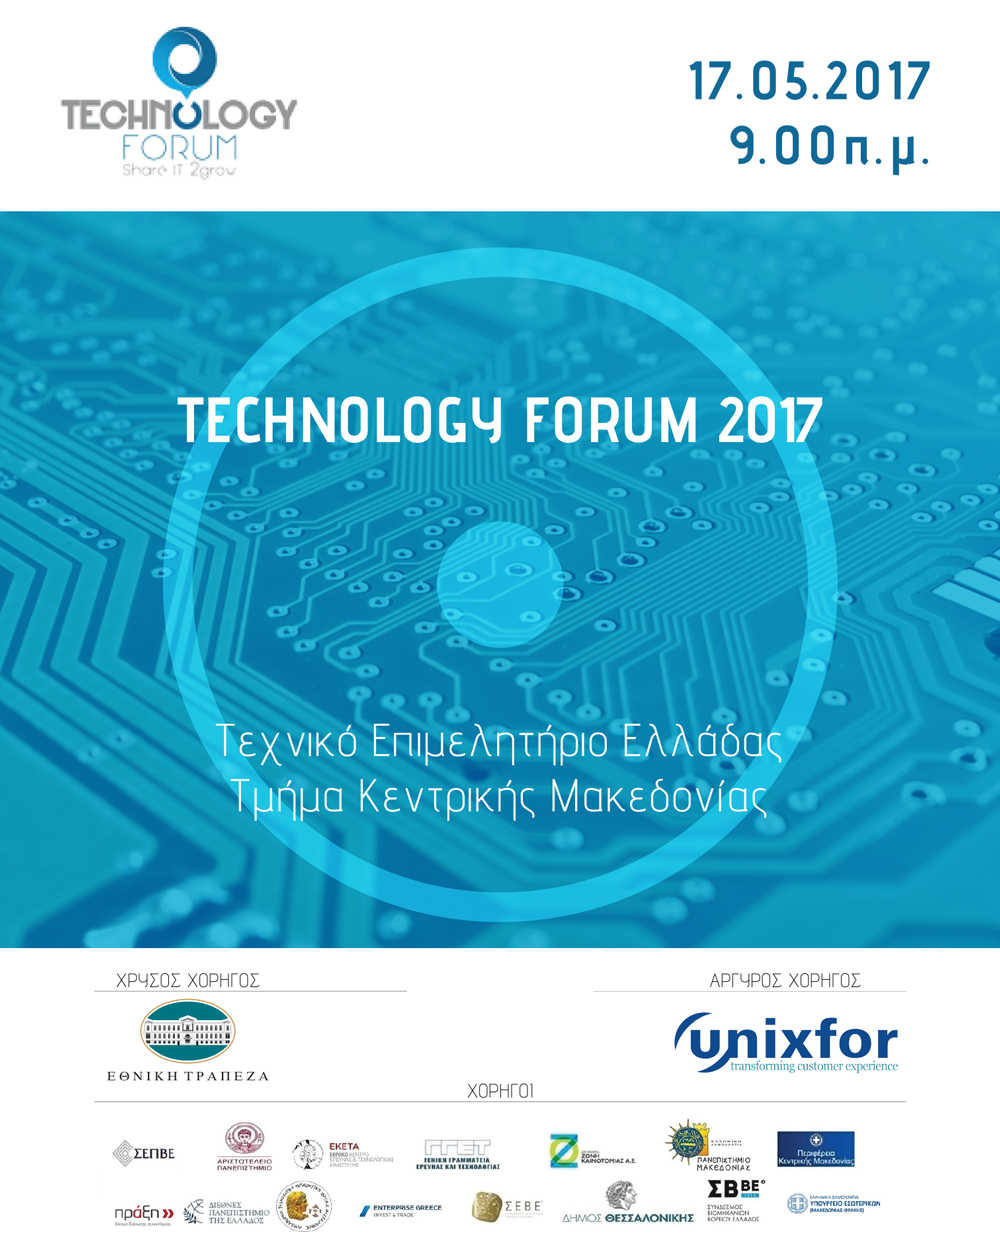 TECHNOLOGY FORUM 4th Save the Date